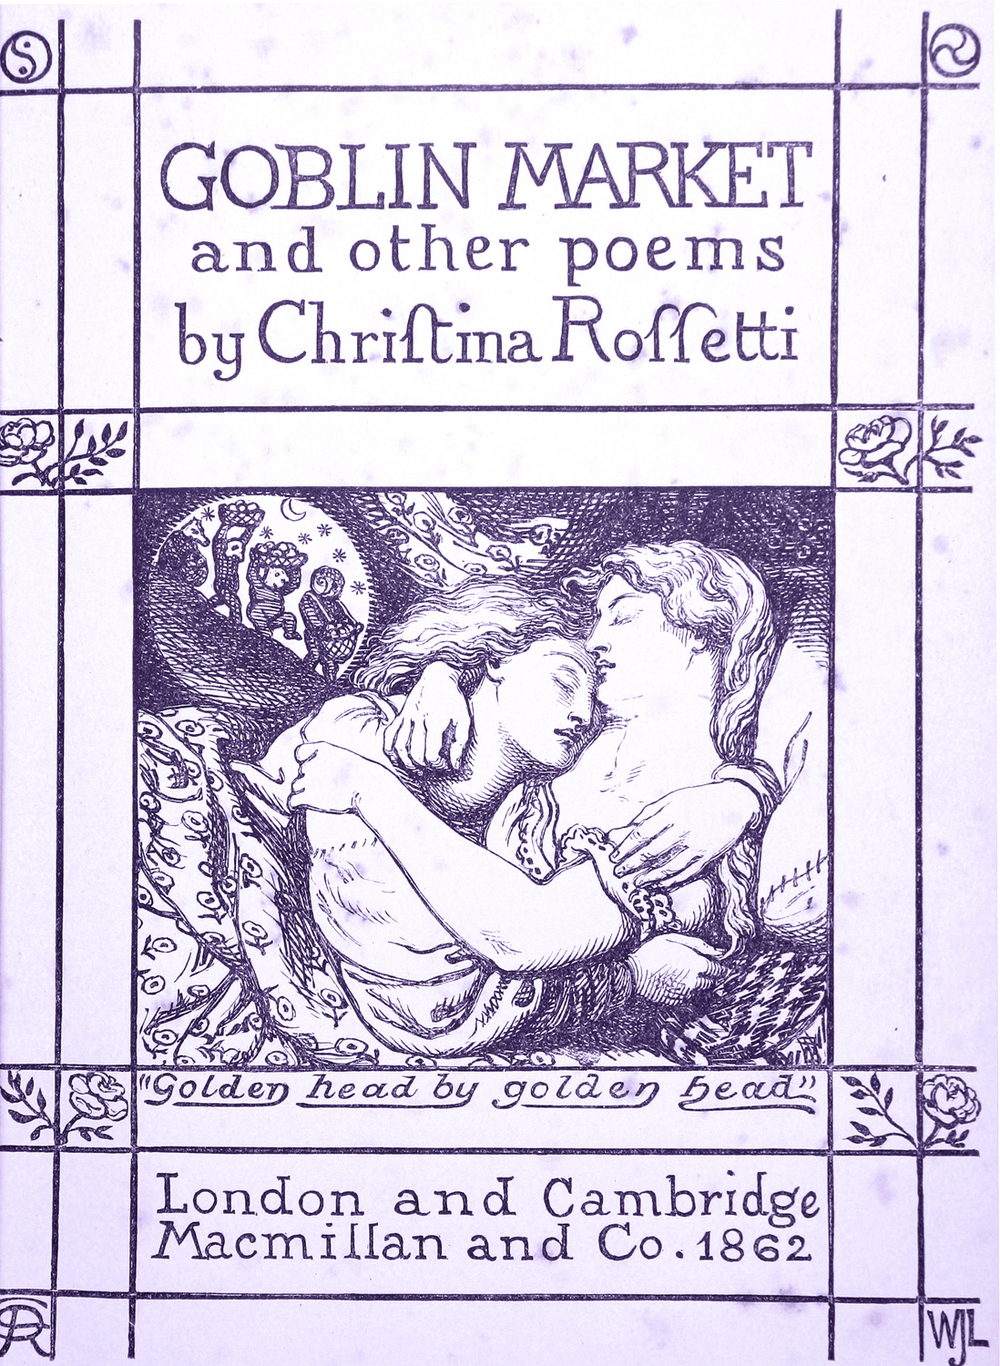 Rossetti, Dante Gabriel. Frontispiece to Christina Rossetti's Goblin Market and Other Poems. 1862. Public domain via Wikimedia Commons.